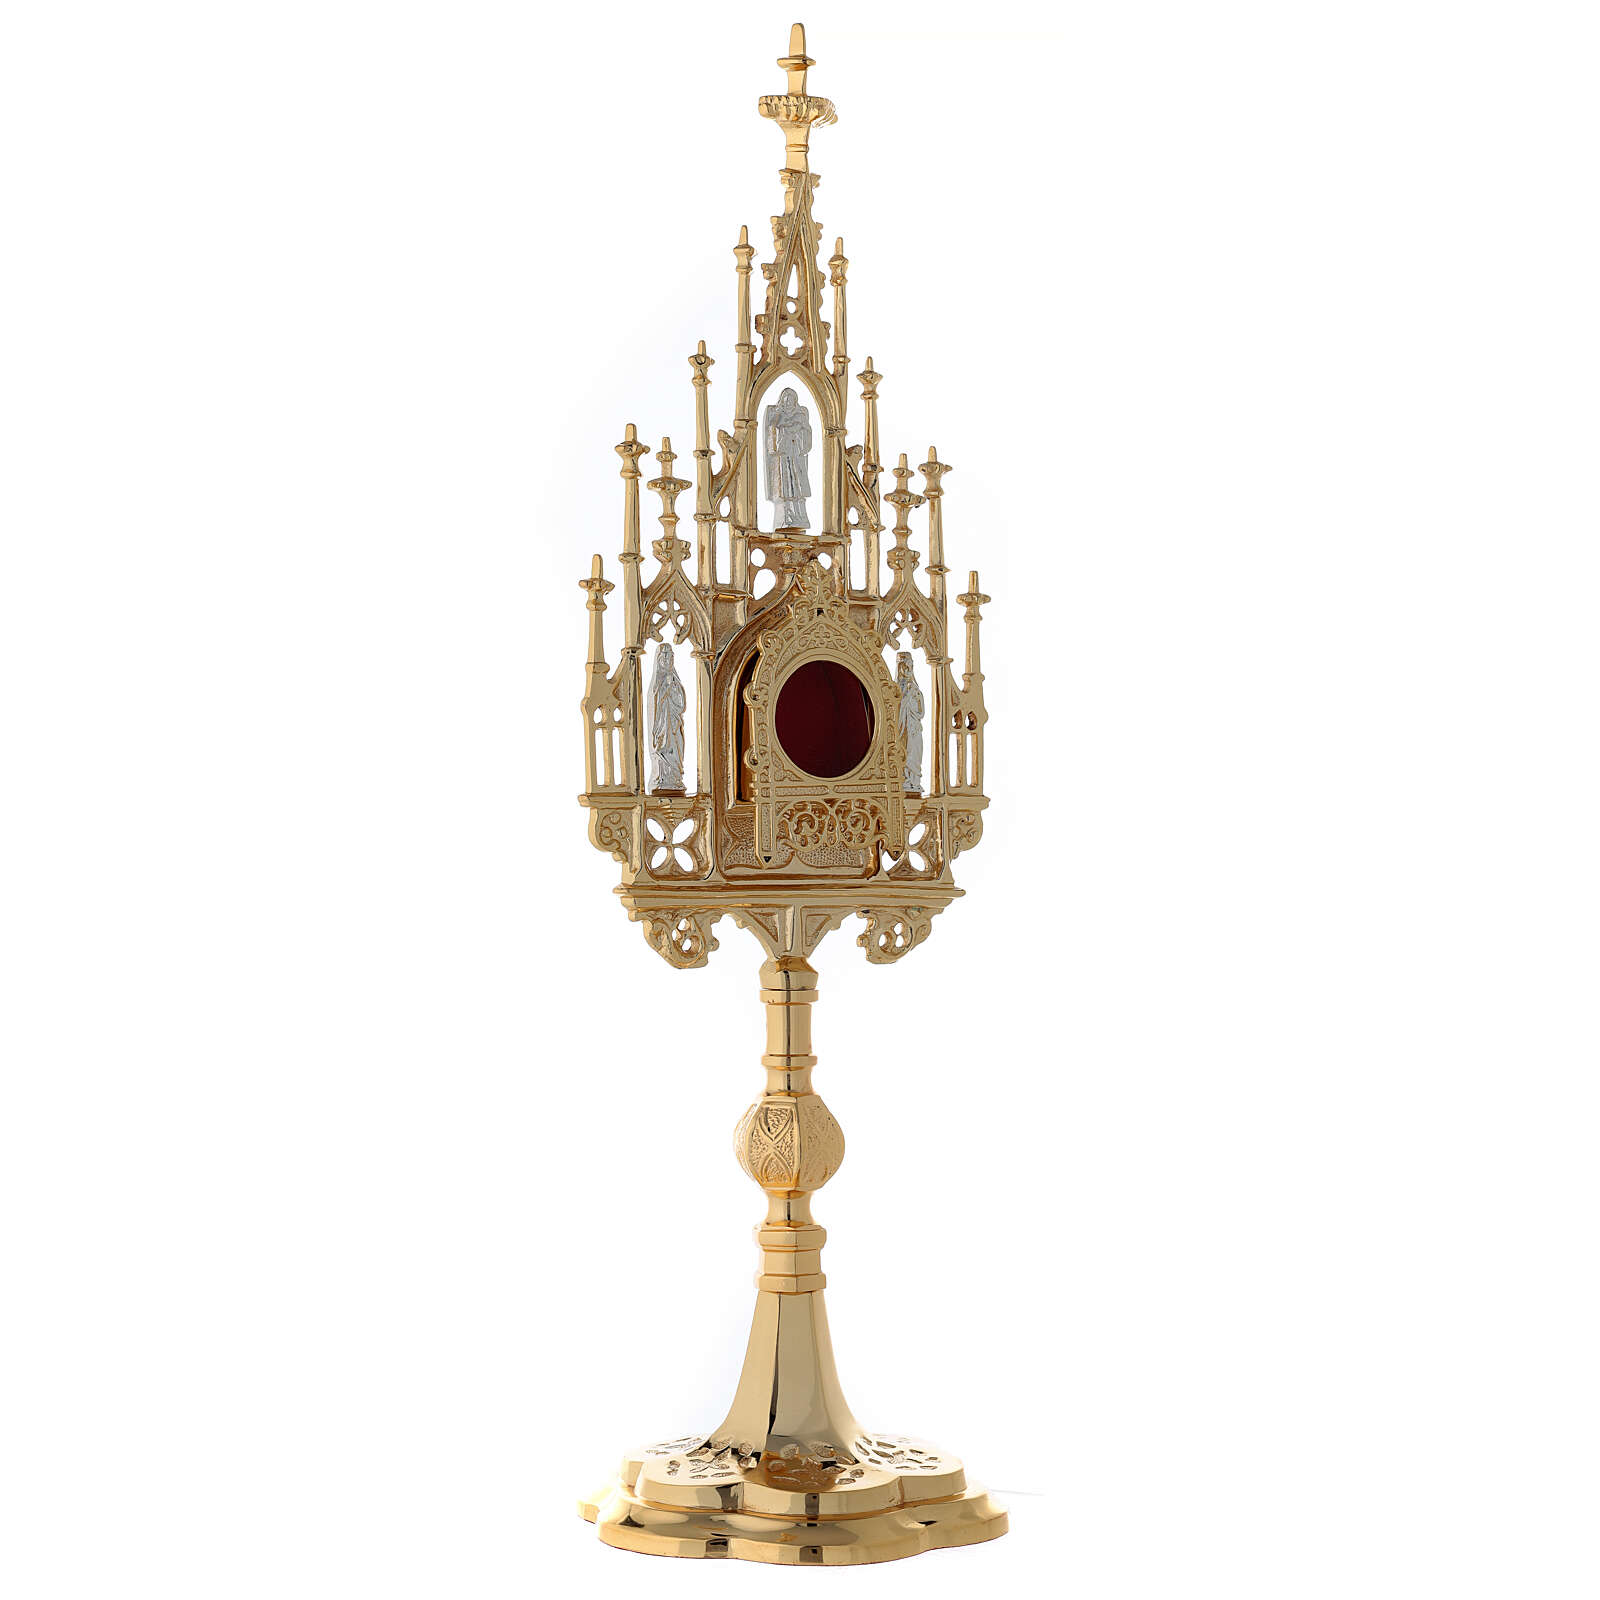 Neogothic gold plated brass reliquary with statues h 22 1/2 in 4